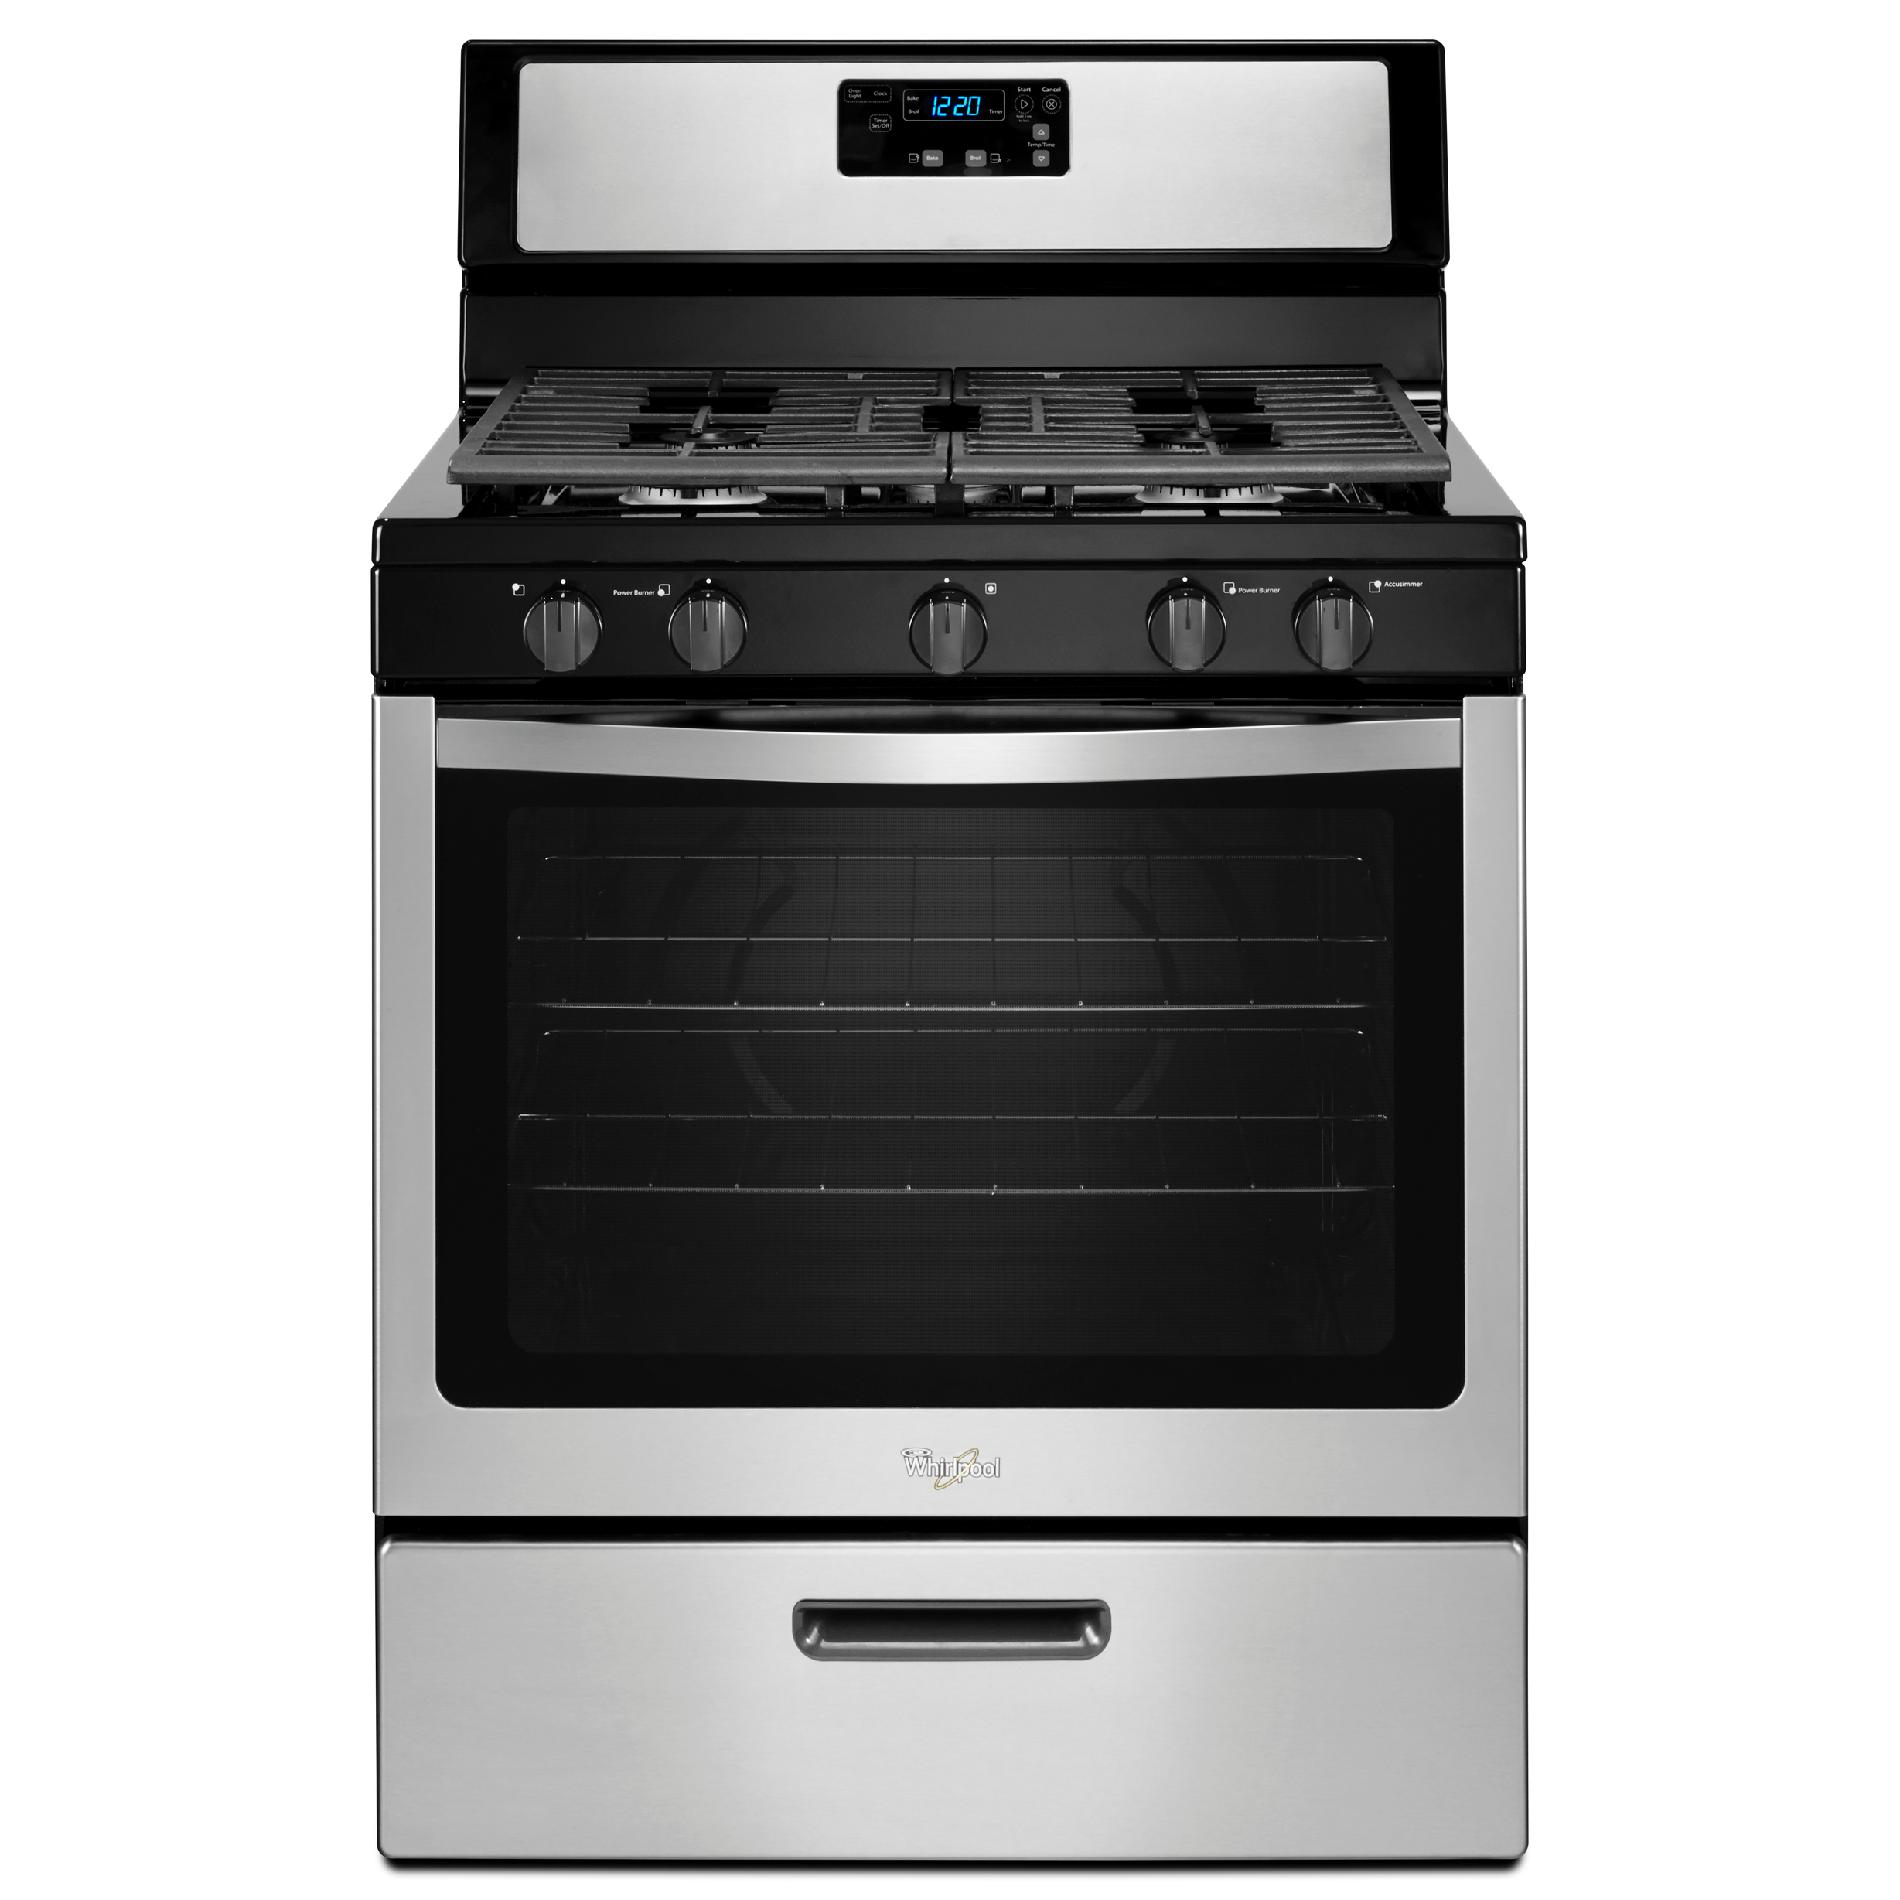 Whirlpool Countertop Stove Whirlpool Wfg505m0bs 5 1 Cu Ft Gas Range W Griddle Stainless